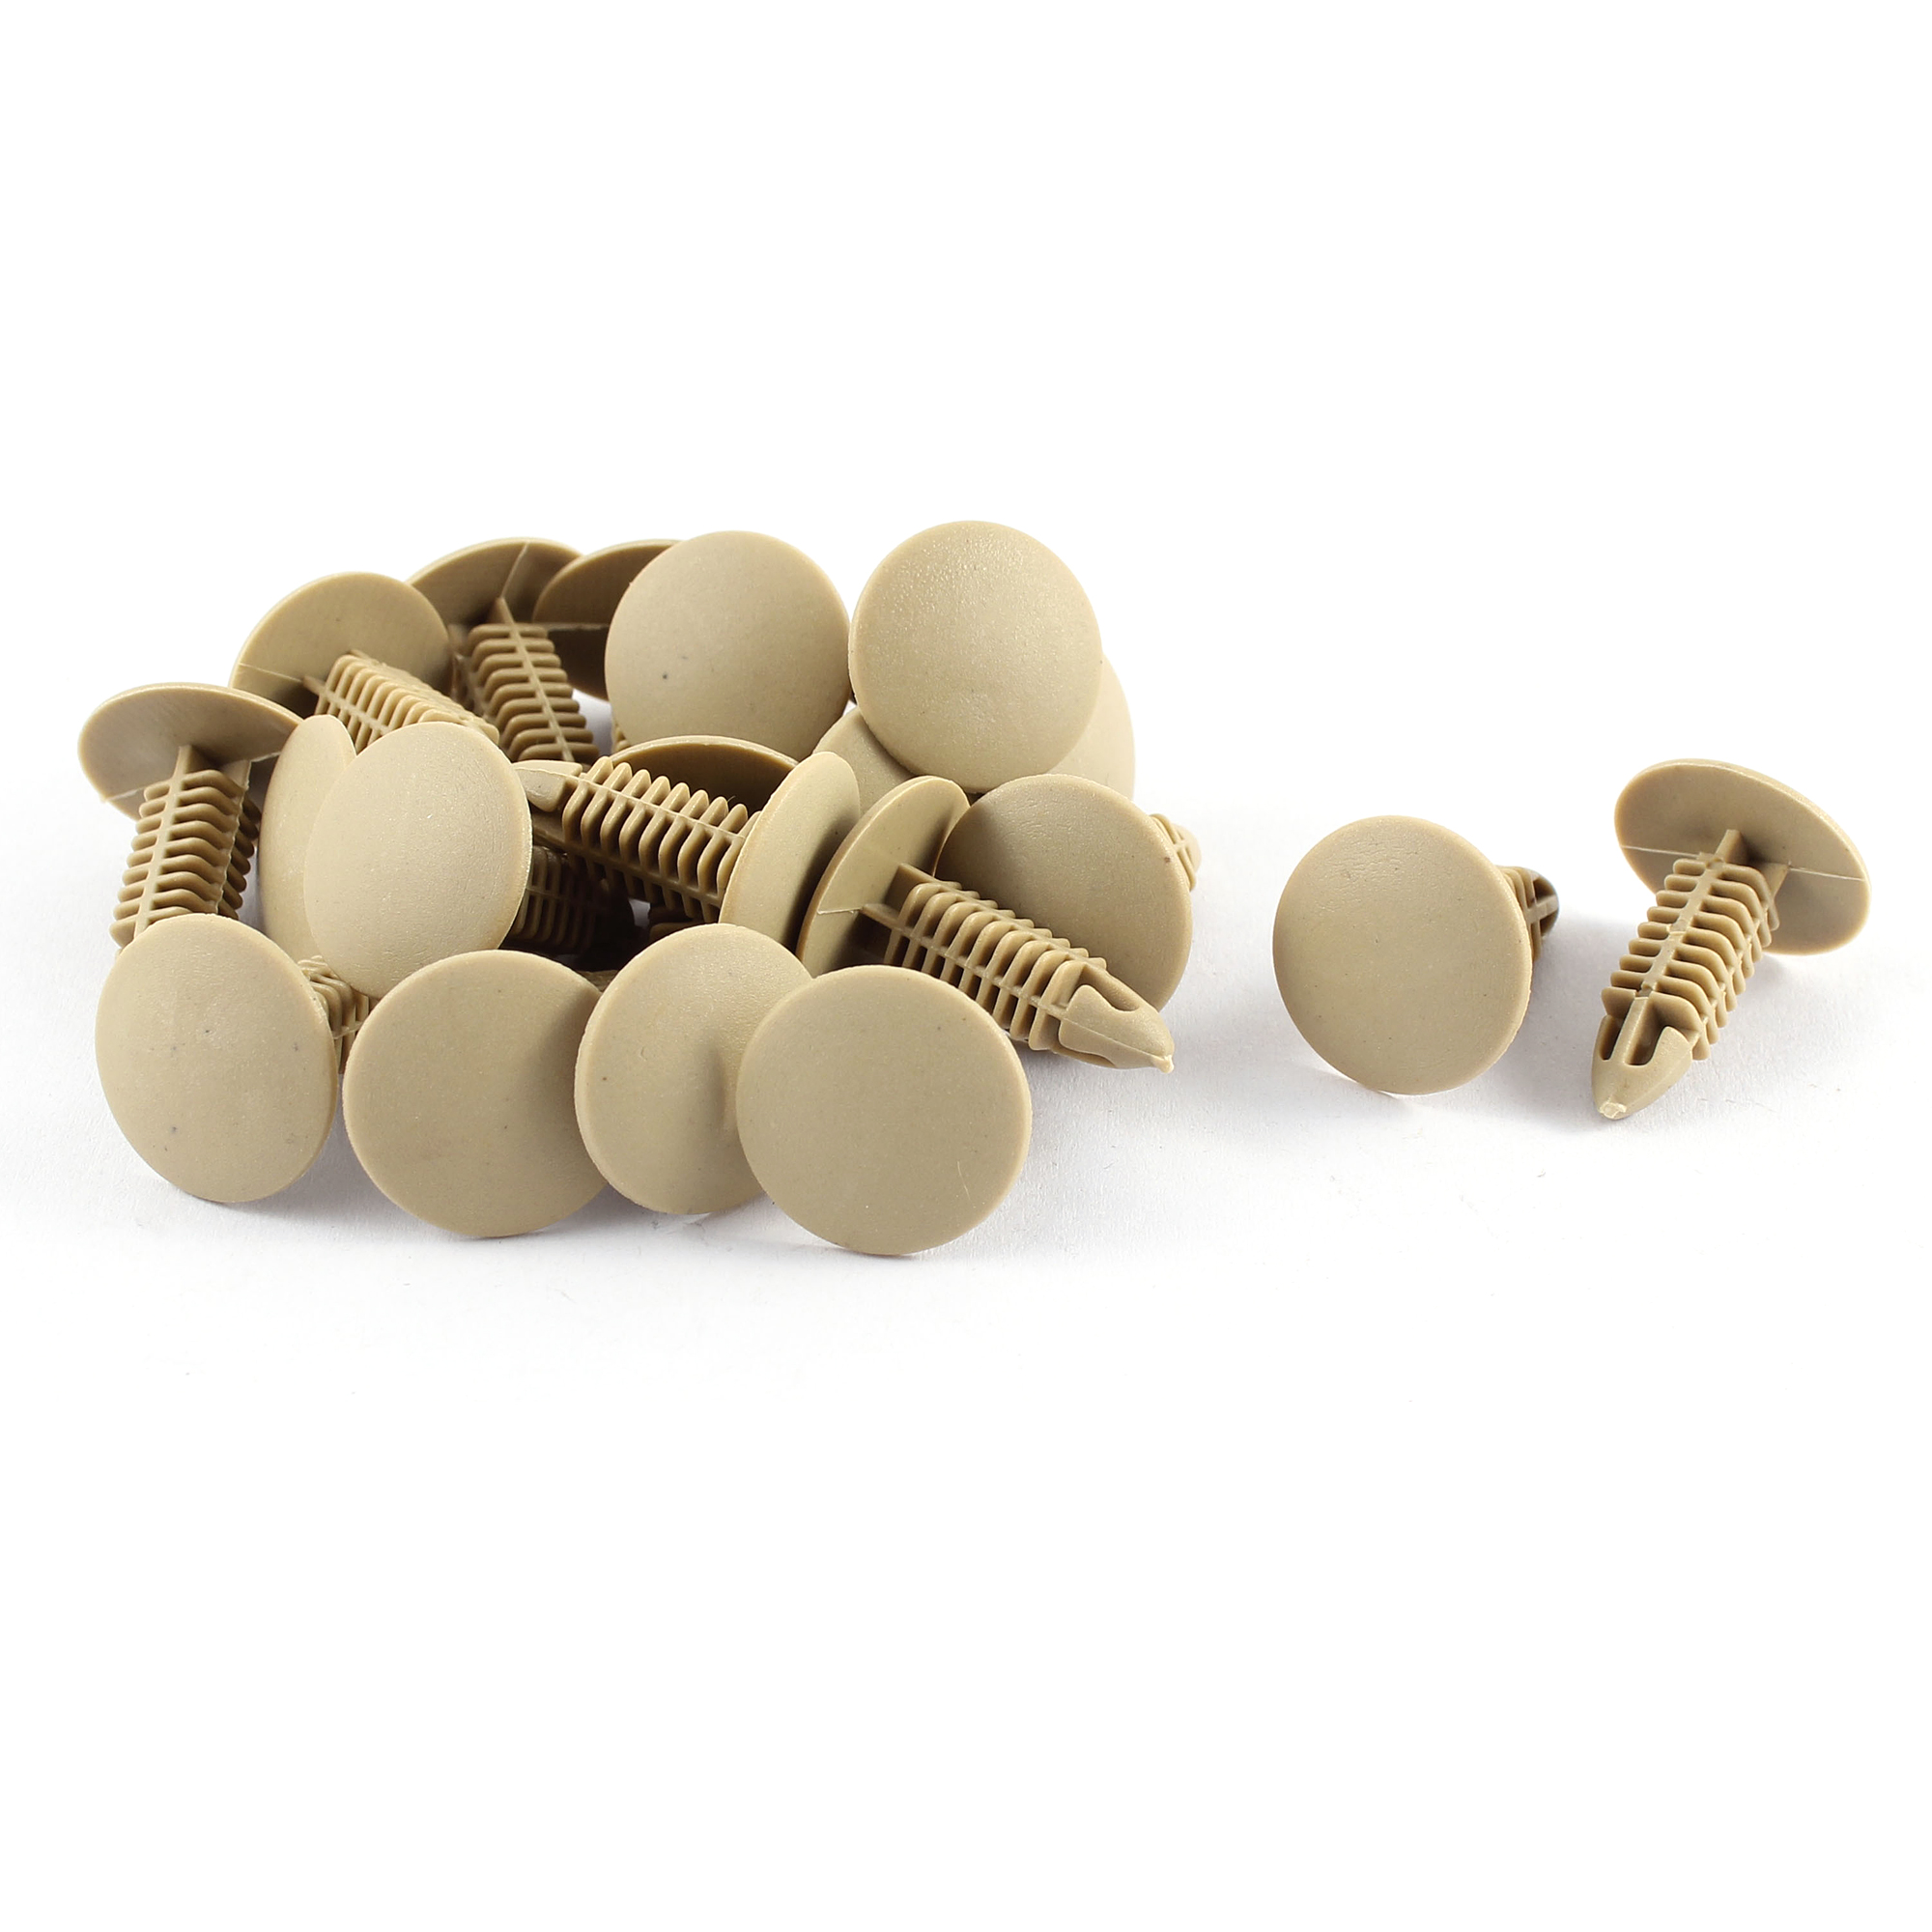 20 Pcs Khaki Plastic Splash Guard Moulding Mat Clips 6mm x 17mm x 21mm